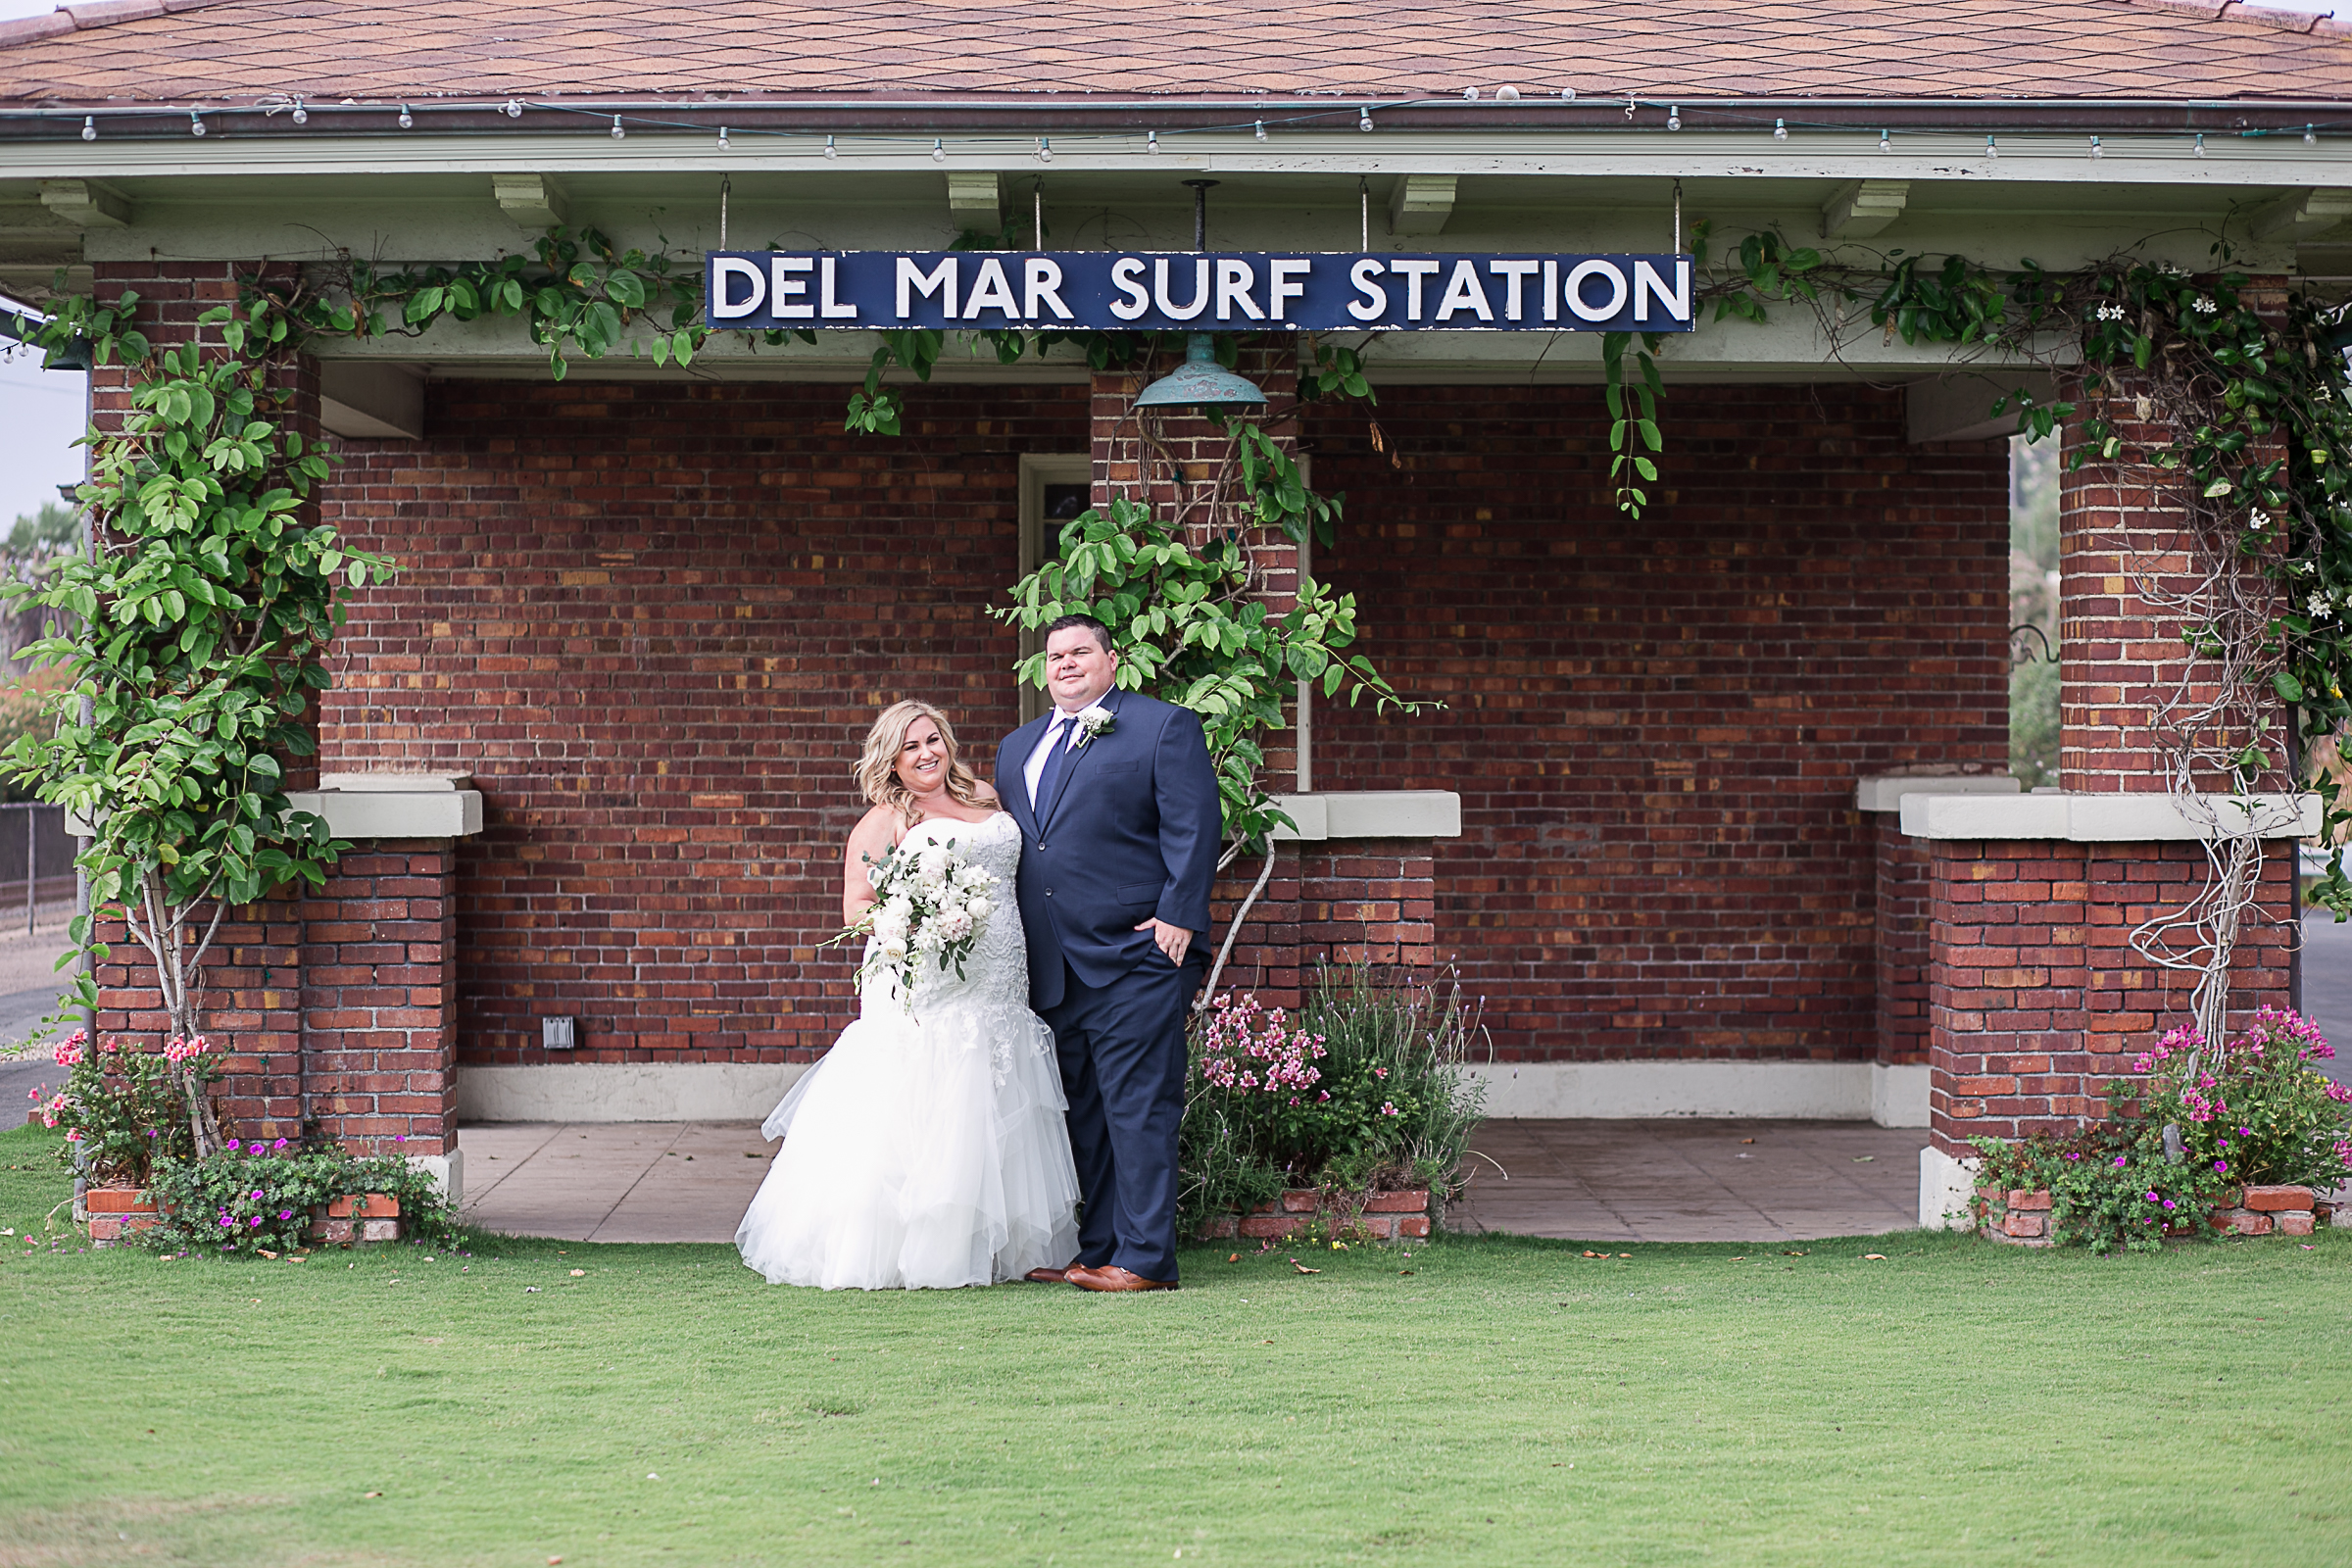 Jen_&_Mike_Del_Mar_Powerhouse_Wedding_2017 (10 of 45).jpg